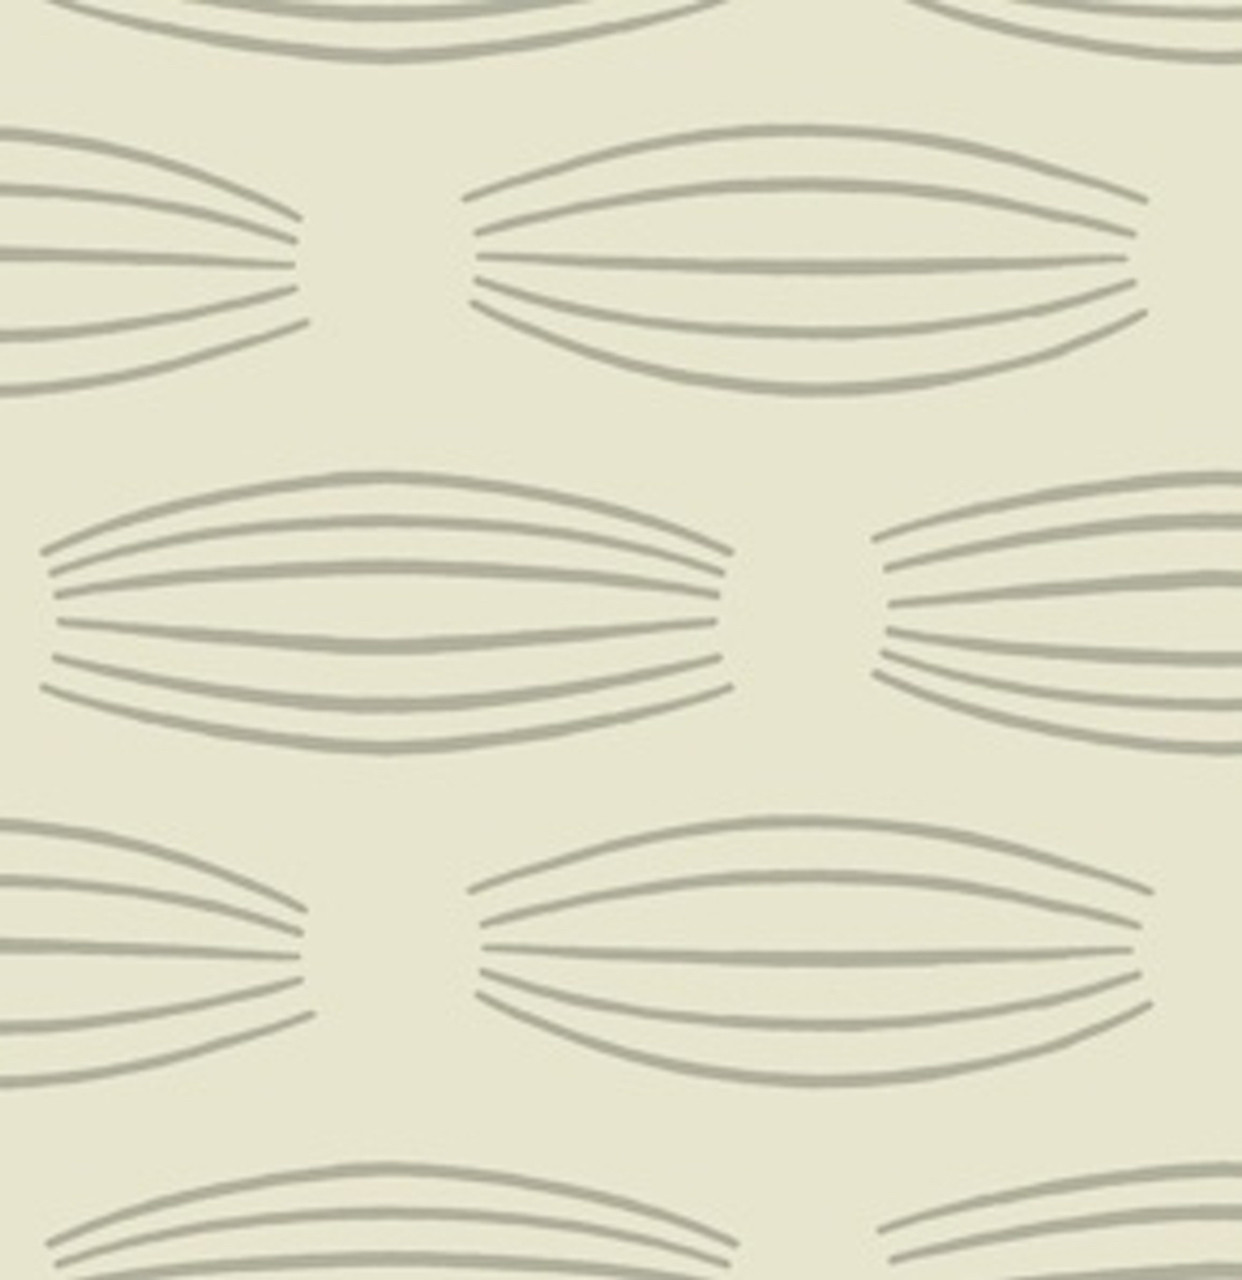 Parson Gray SAPG001 Curious Nature Cocoons Silver Sateen Home Dec Fabric By Yd